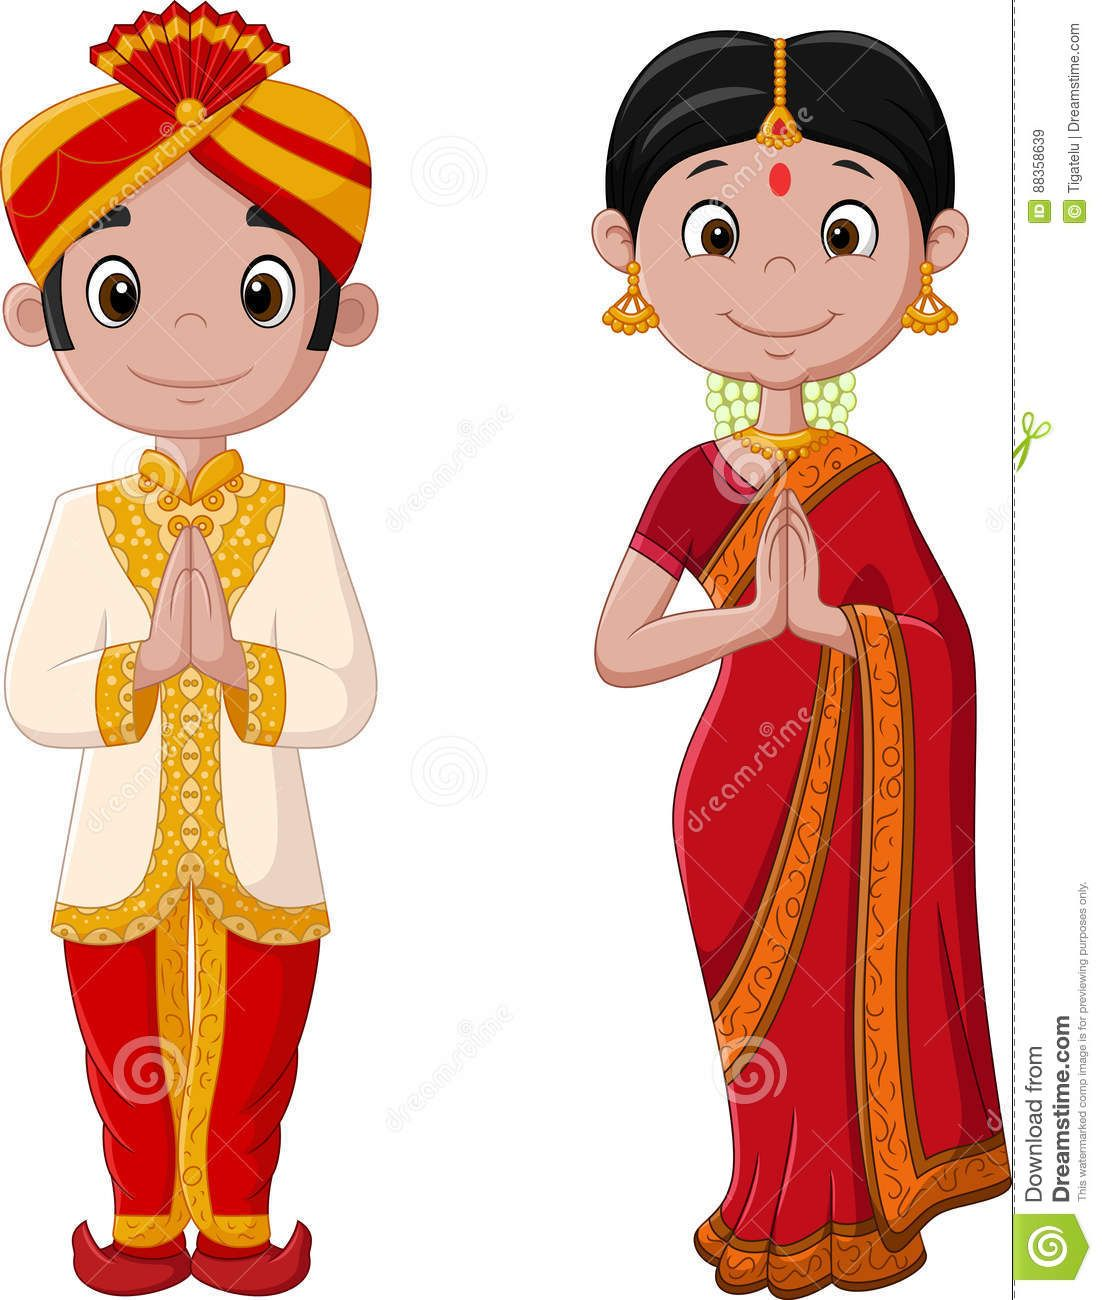 Cartoon Indian Couple Wearing Traditional Costume Stock Vector - Illustration Of Cartoon, Culture: 88358639